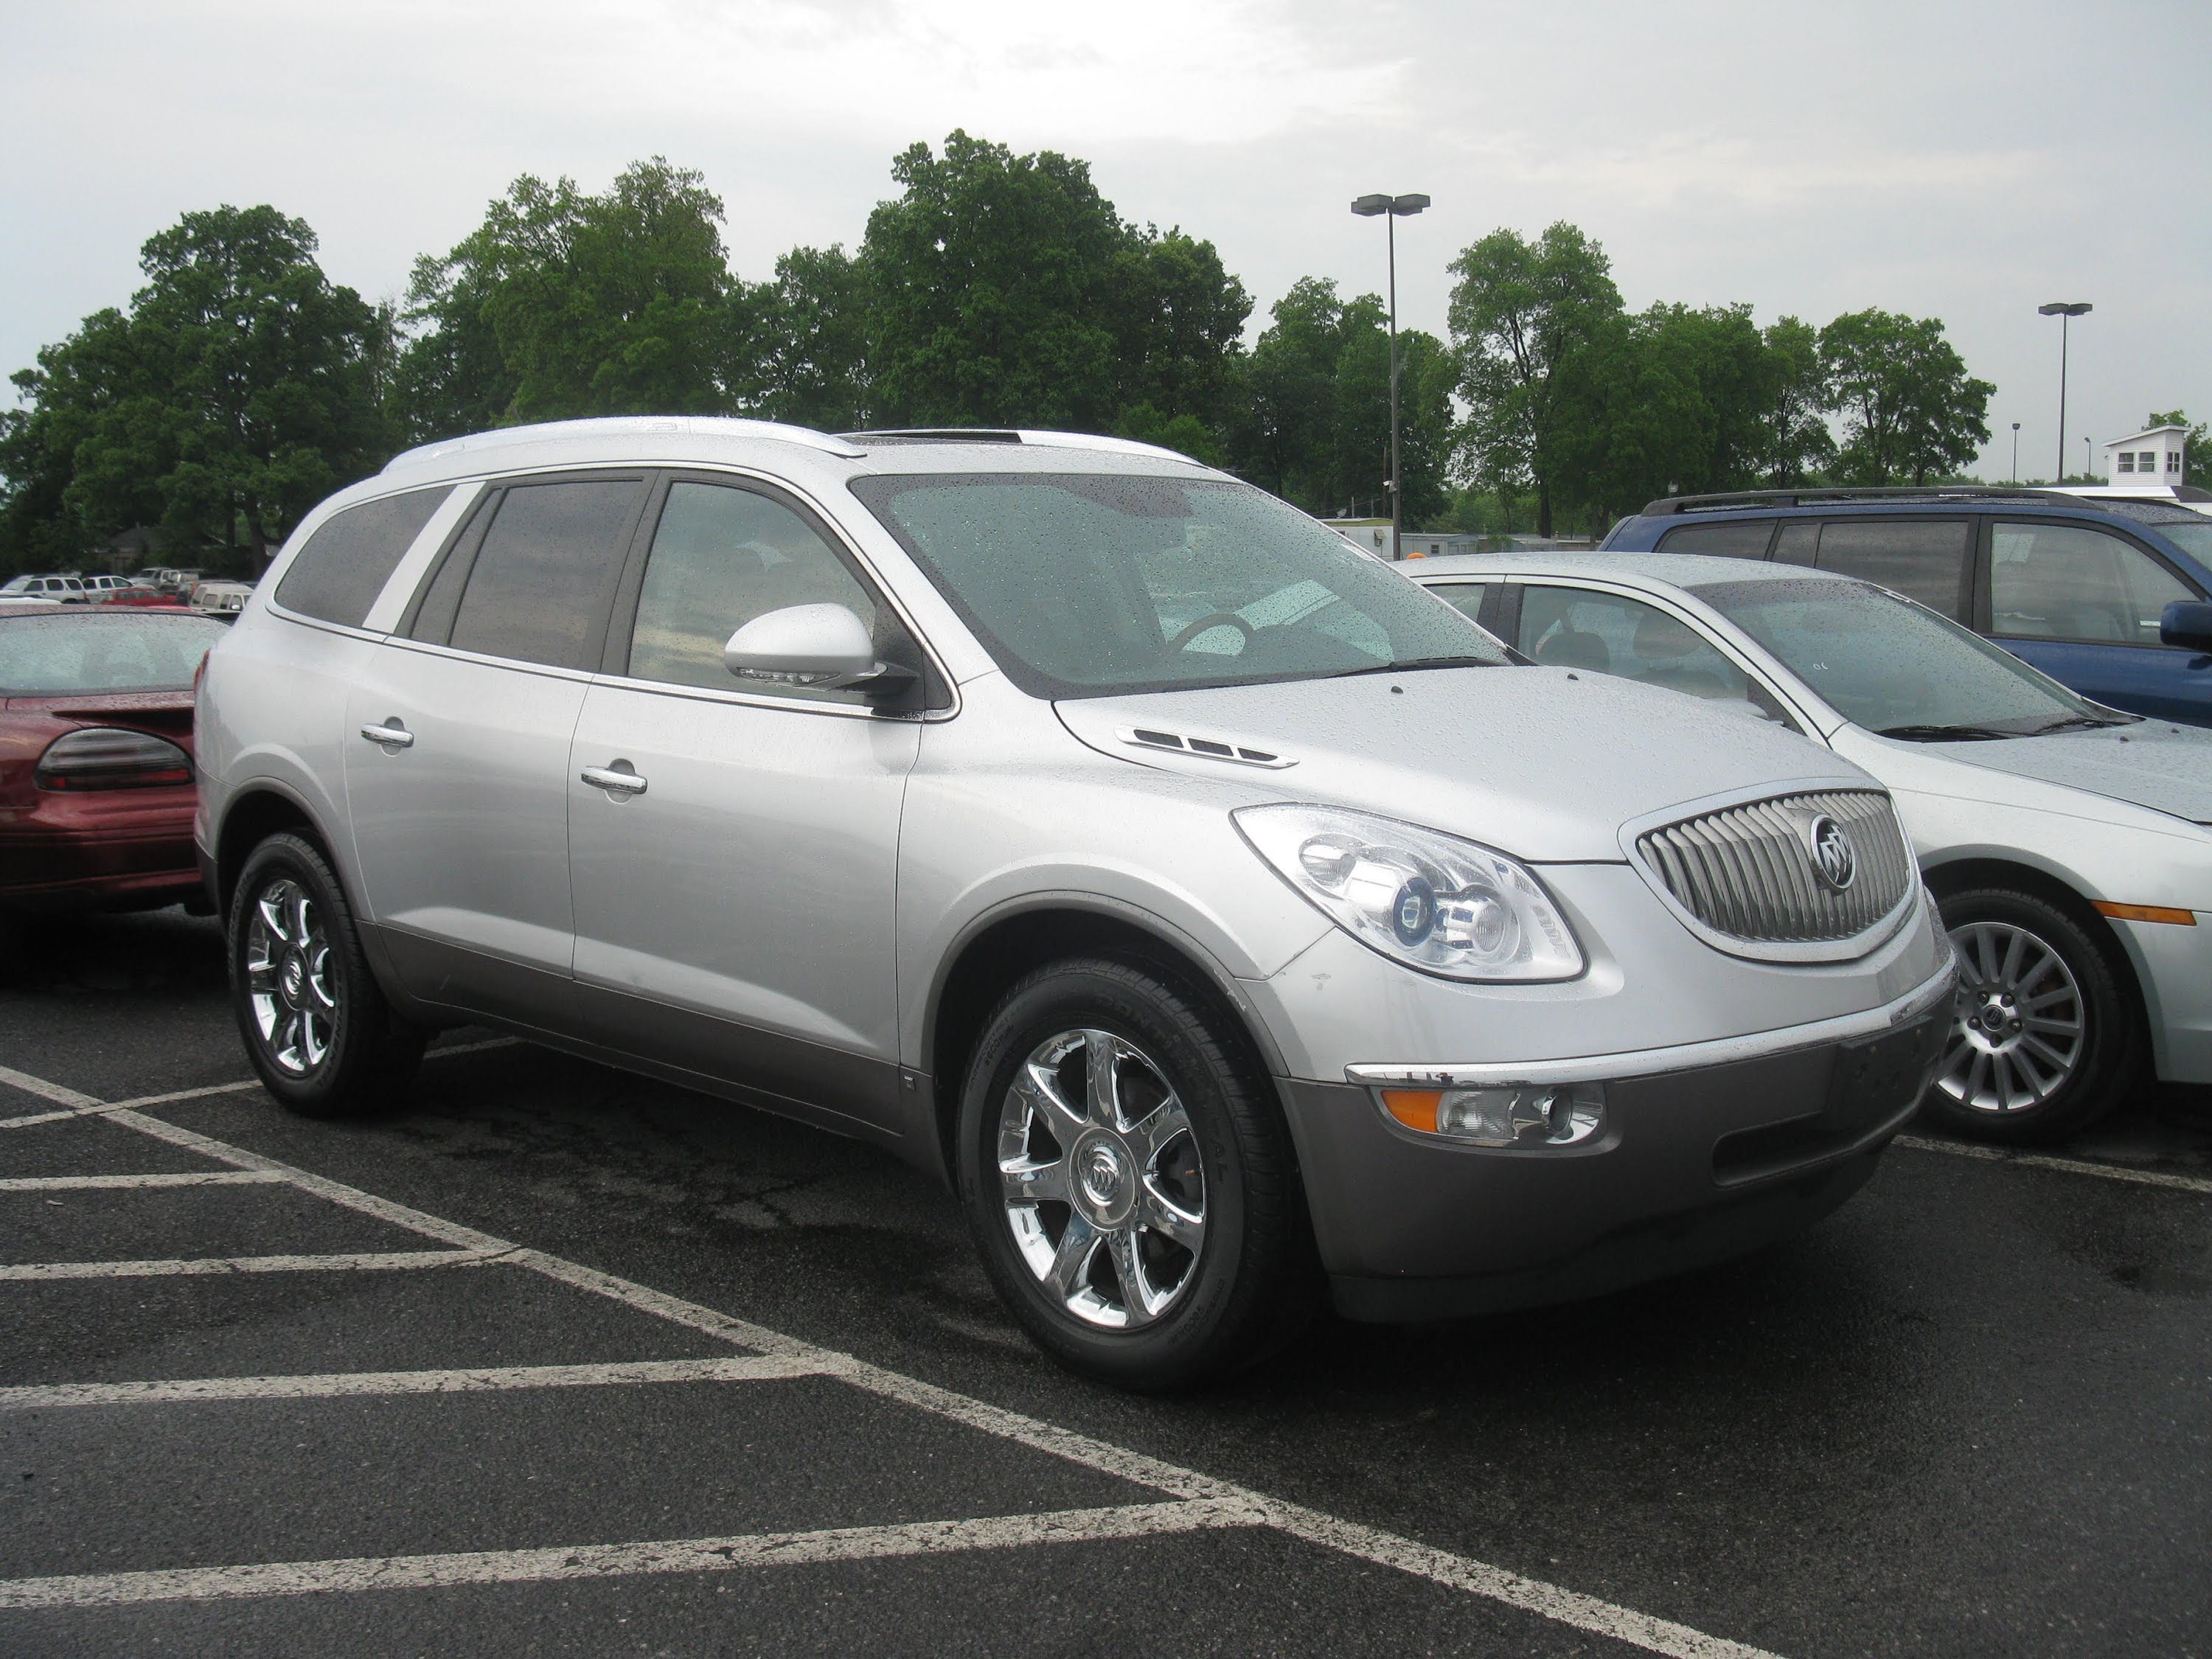 enclaves cool not enclave s cxl ac sparky answers well a does buick c